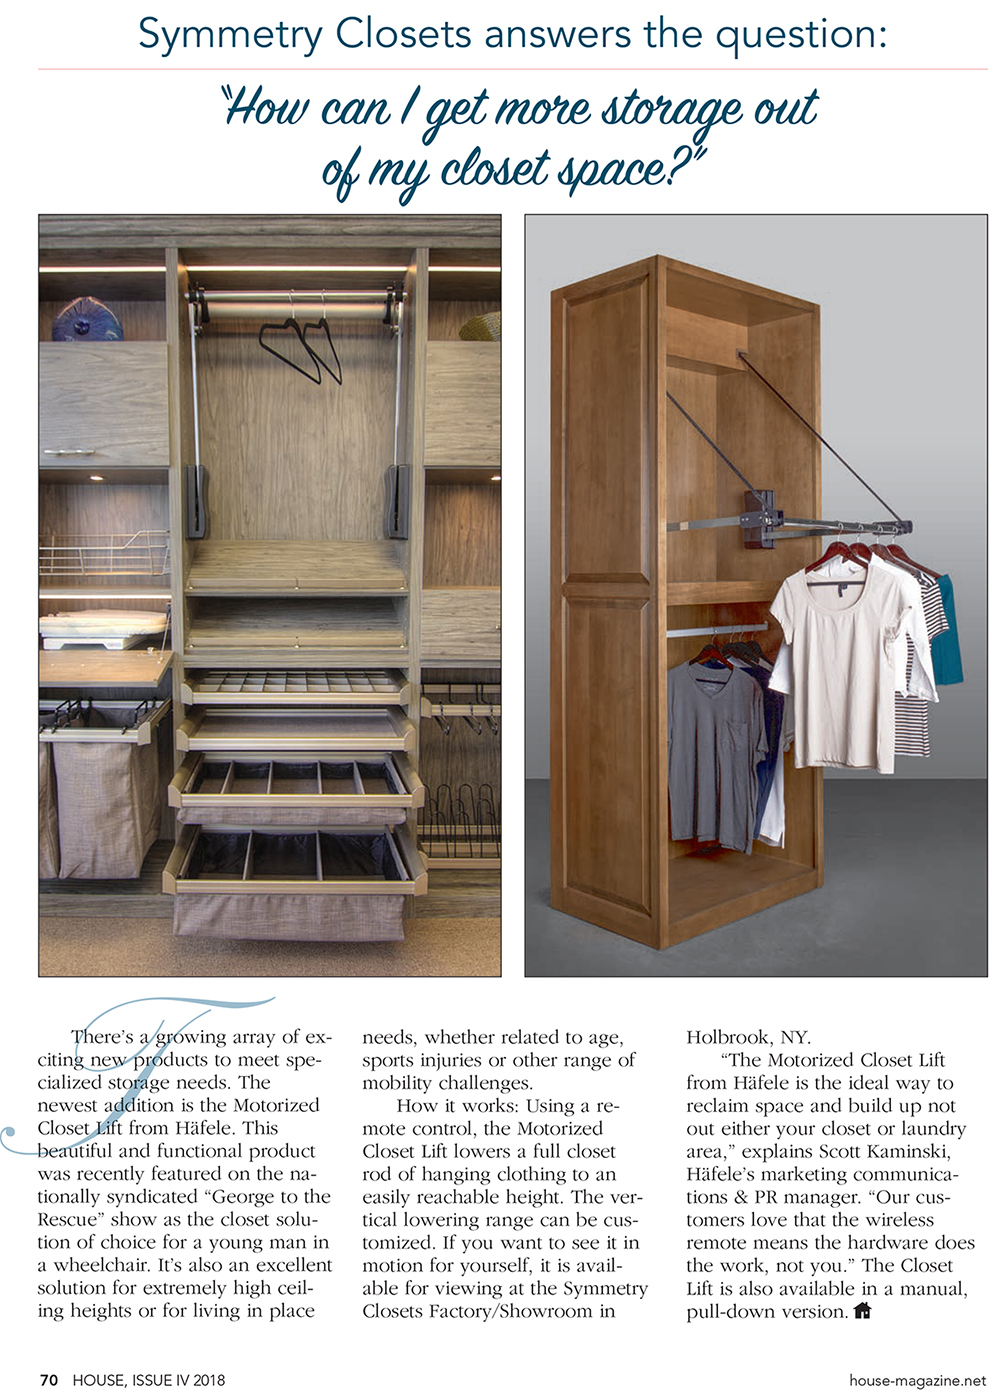 Symmetry closets, Custom built in, pull down rod, pull out drawers, soft close, hampers, organizing